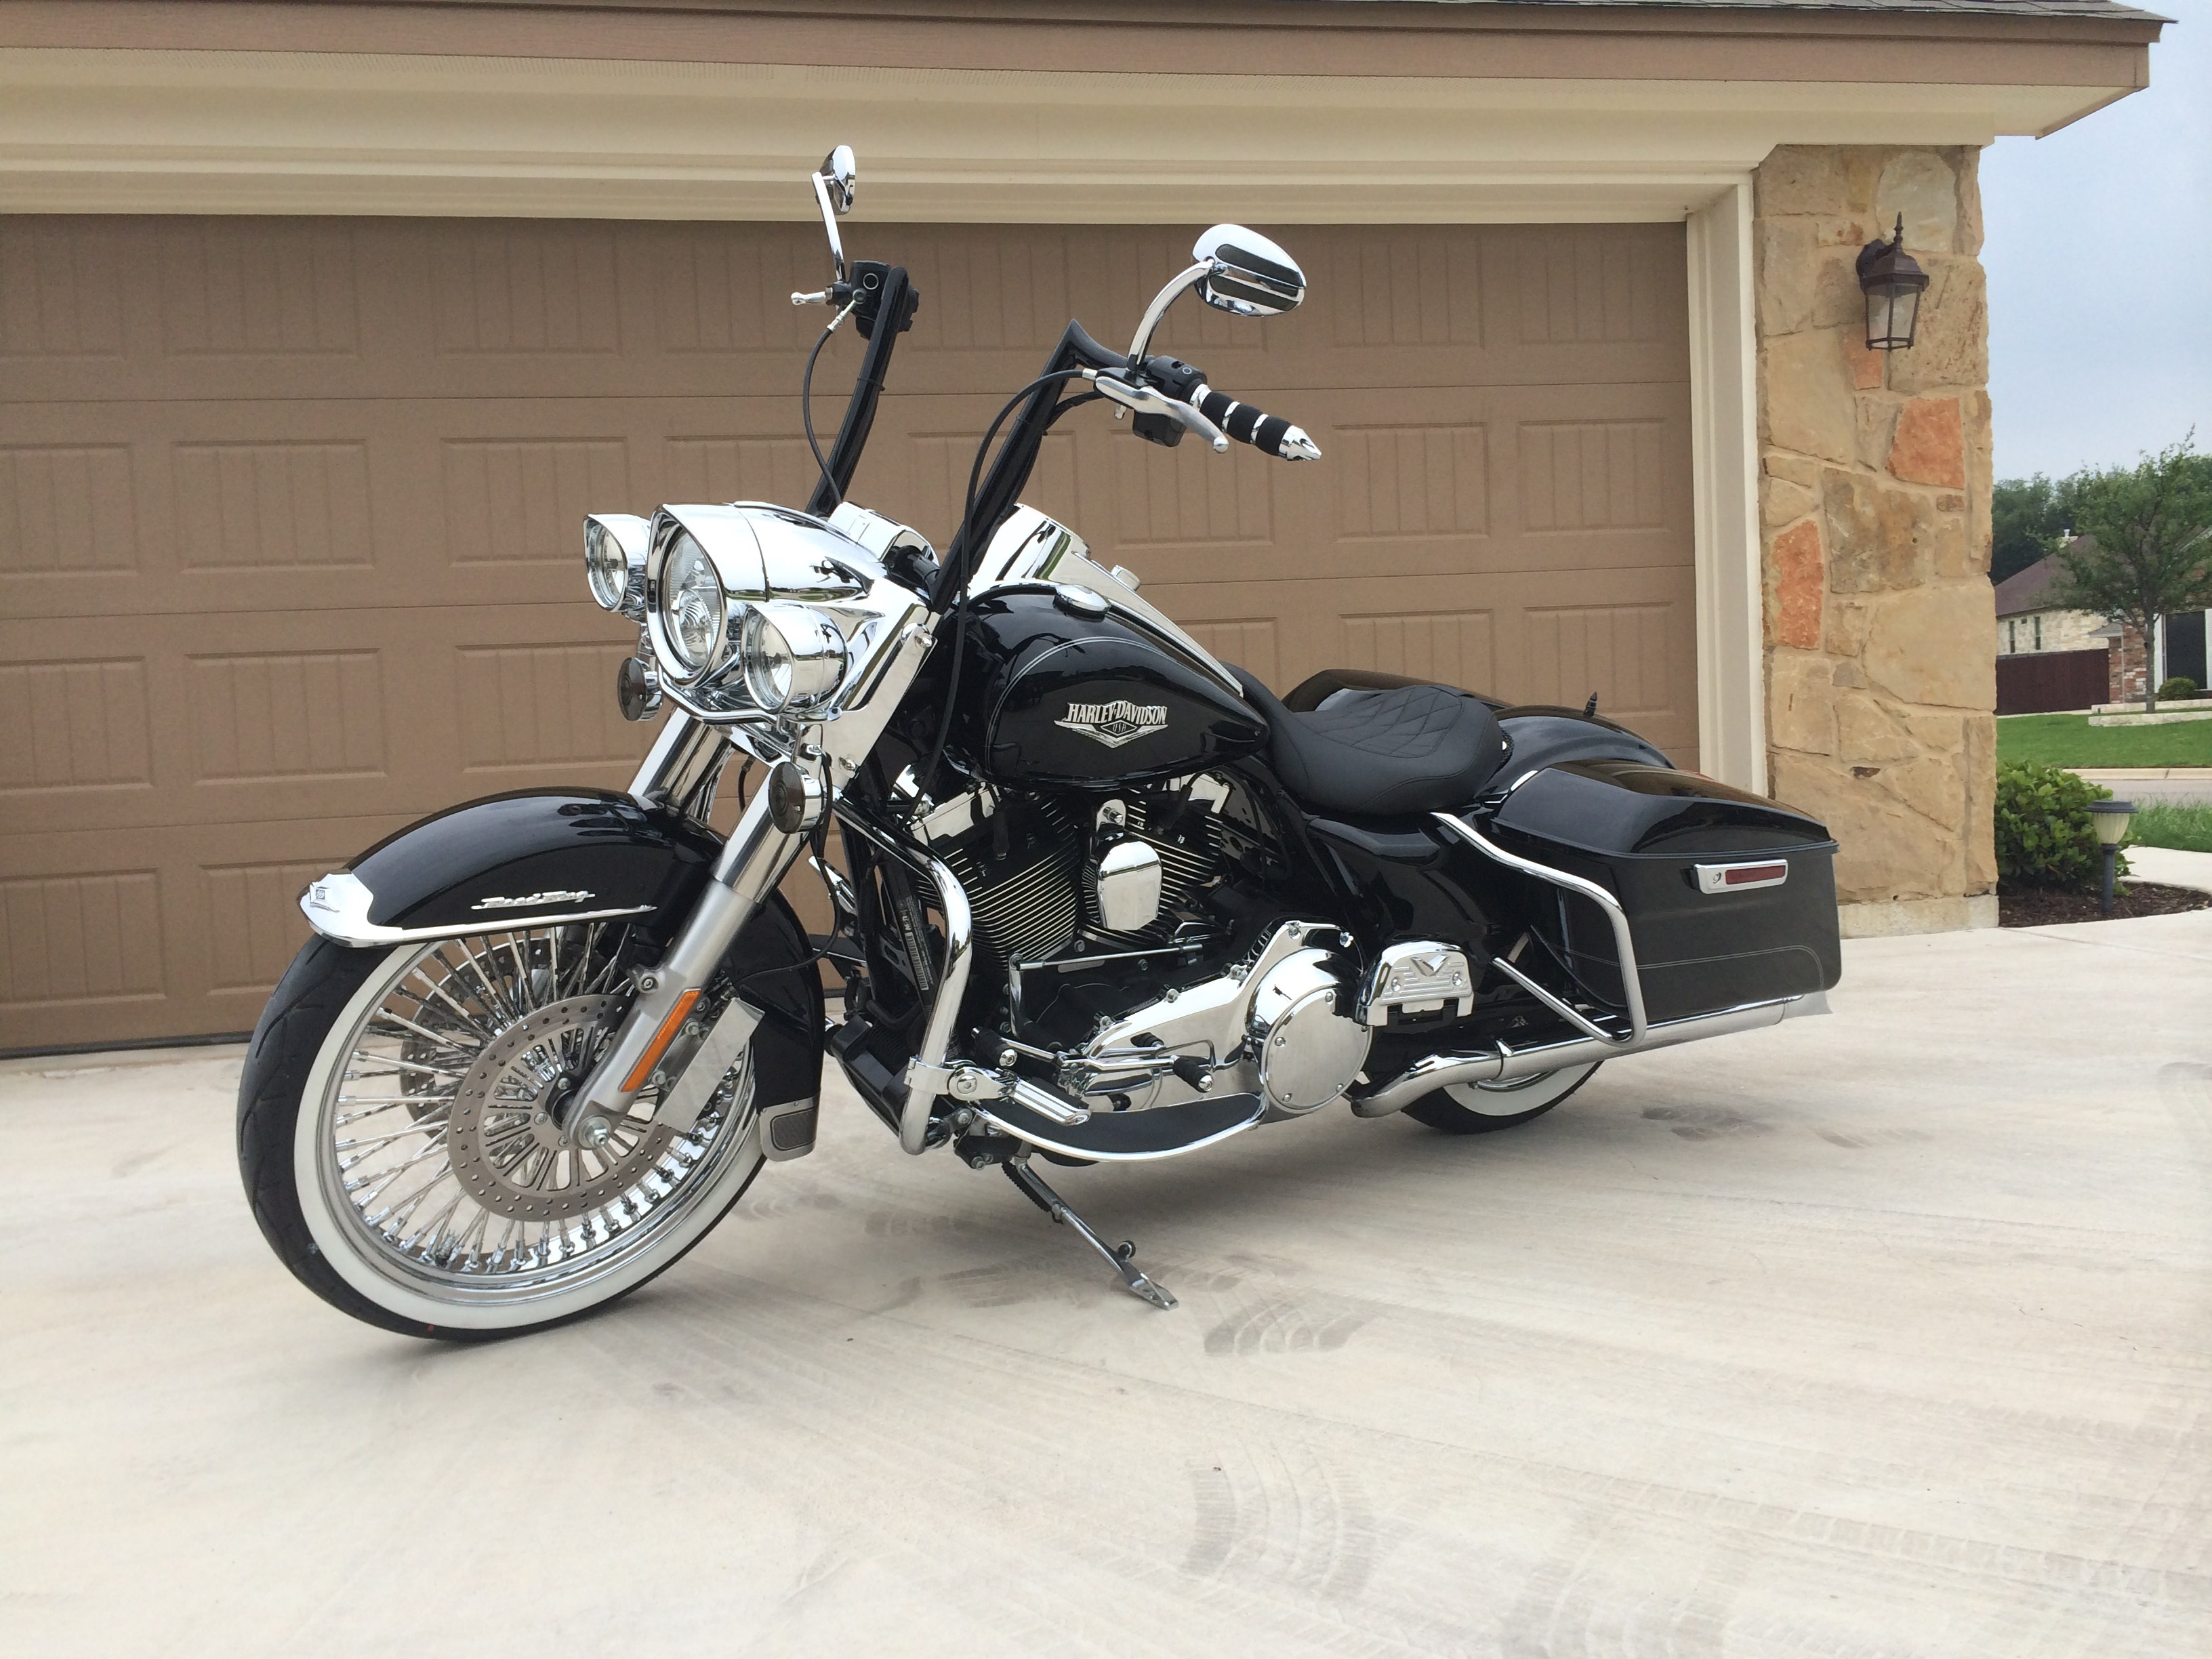 Harley Davidson Road King Classic Price